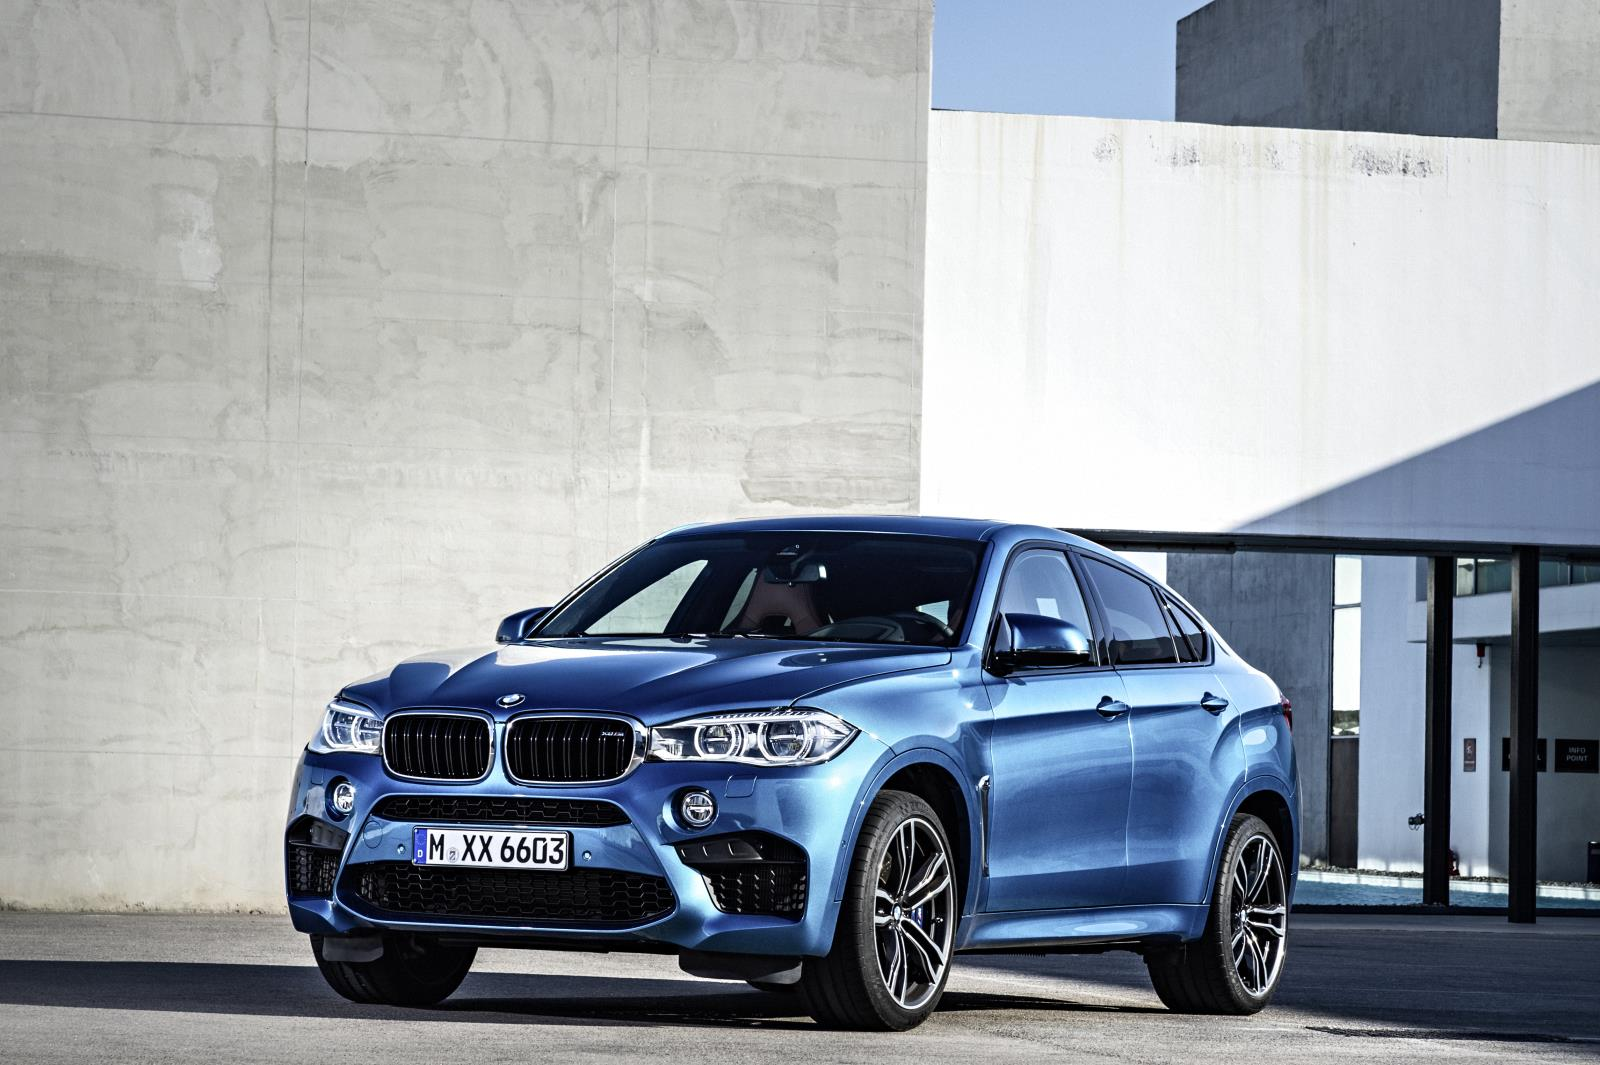 Michelin Pilot Super Sport For The New BMW X5M And X6M